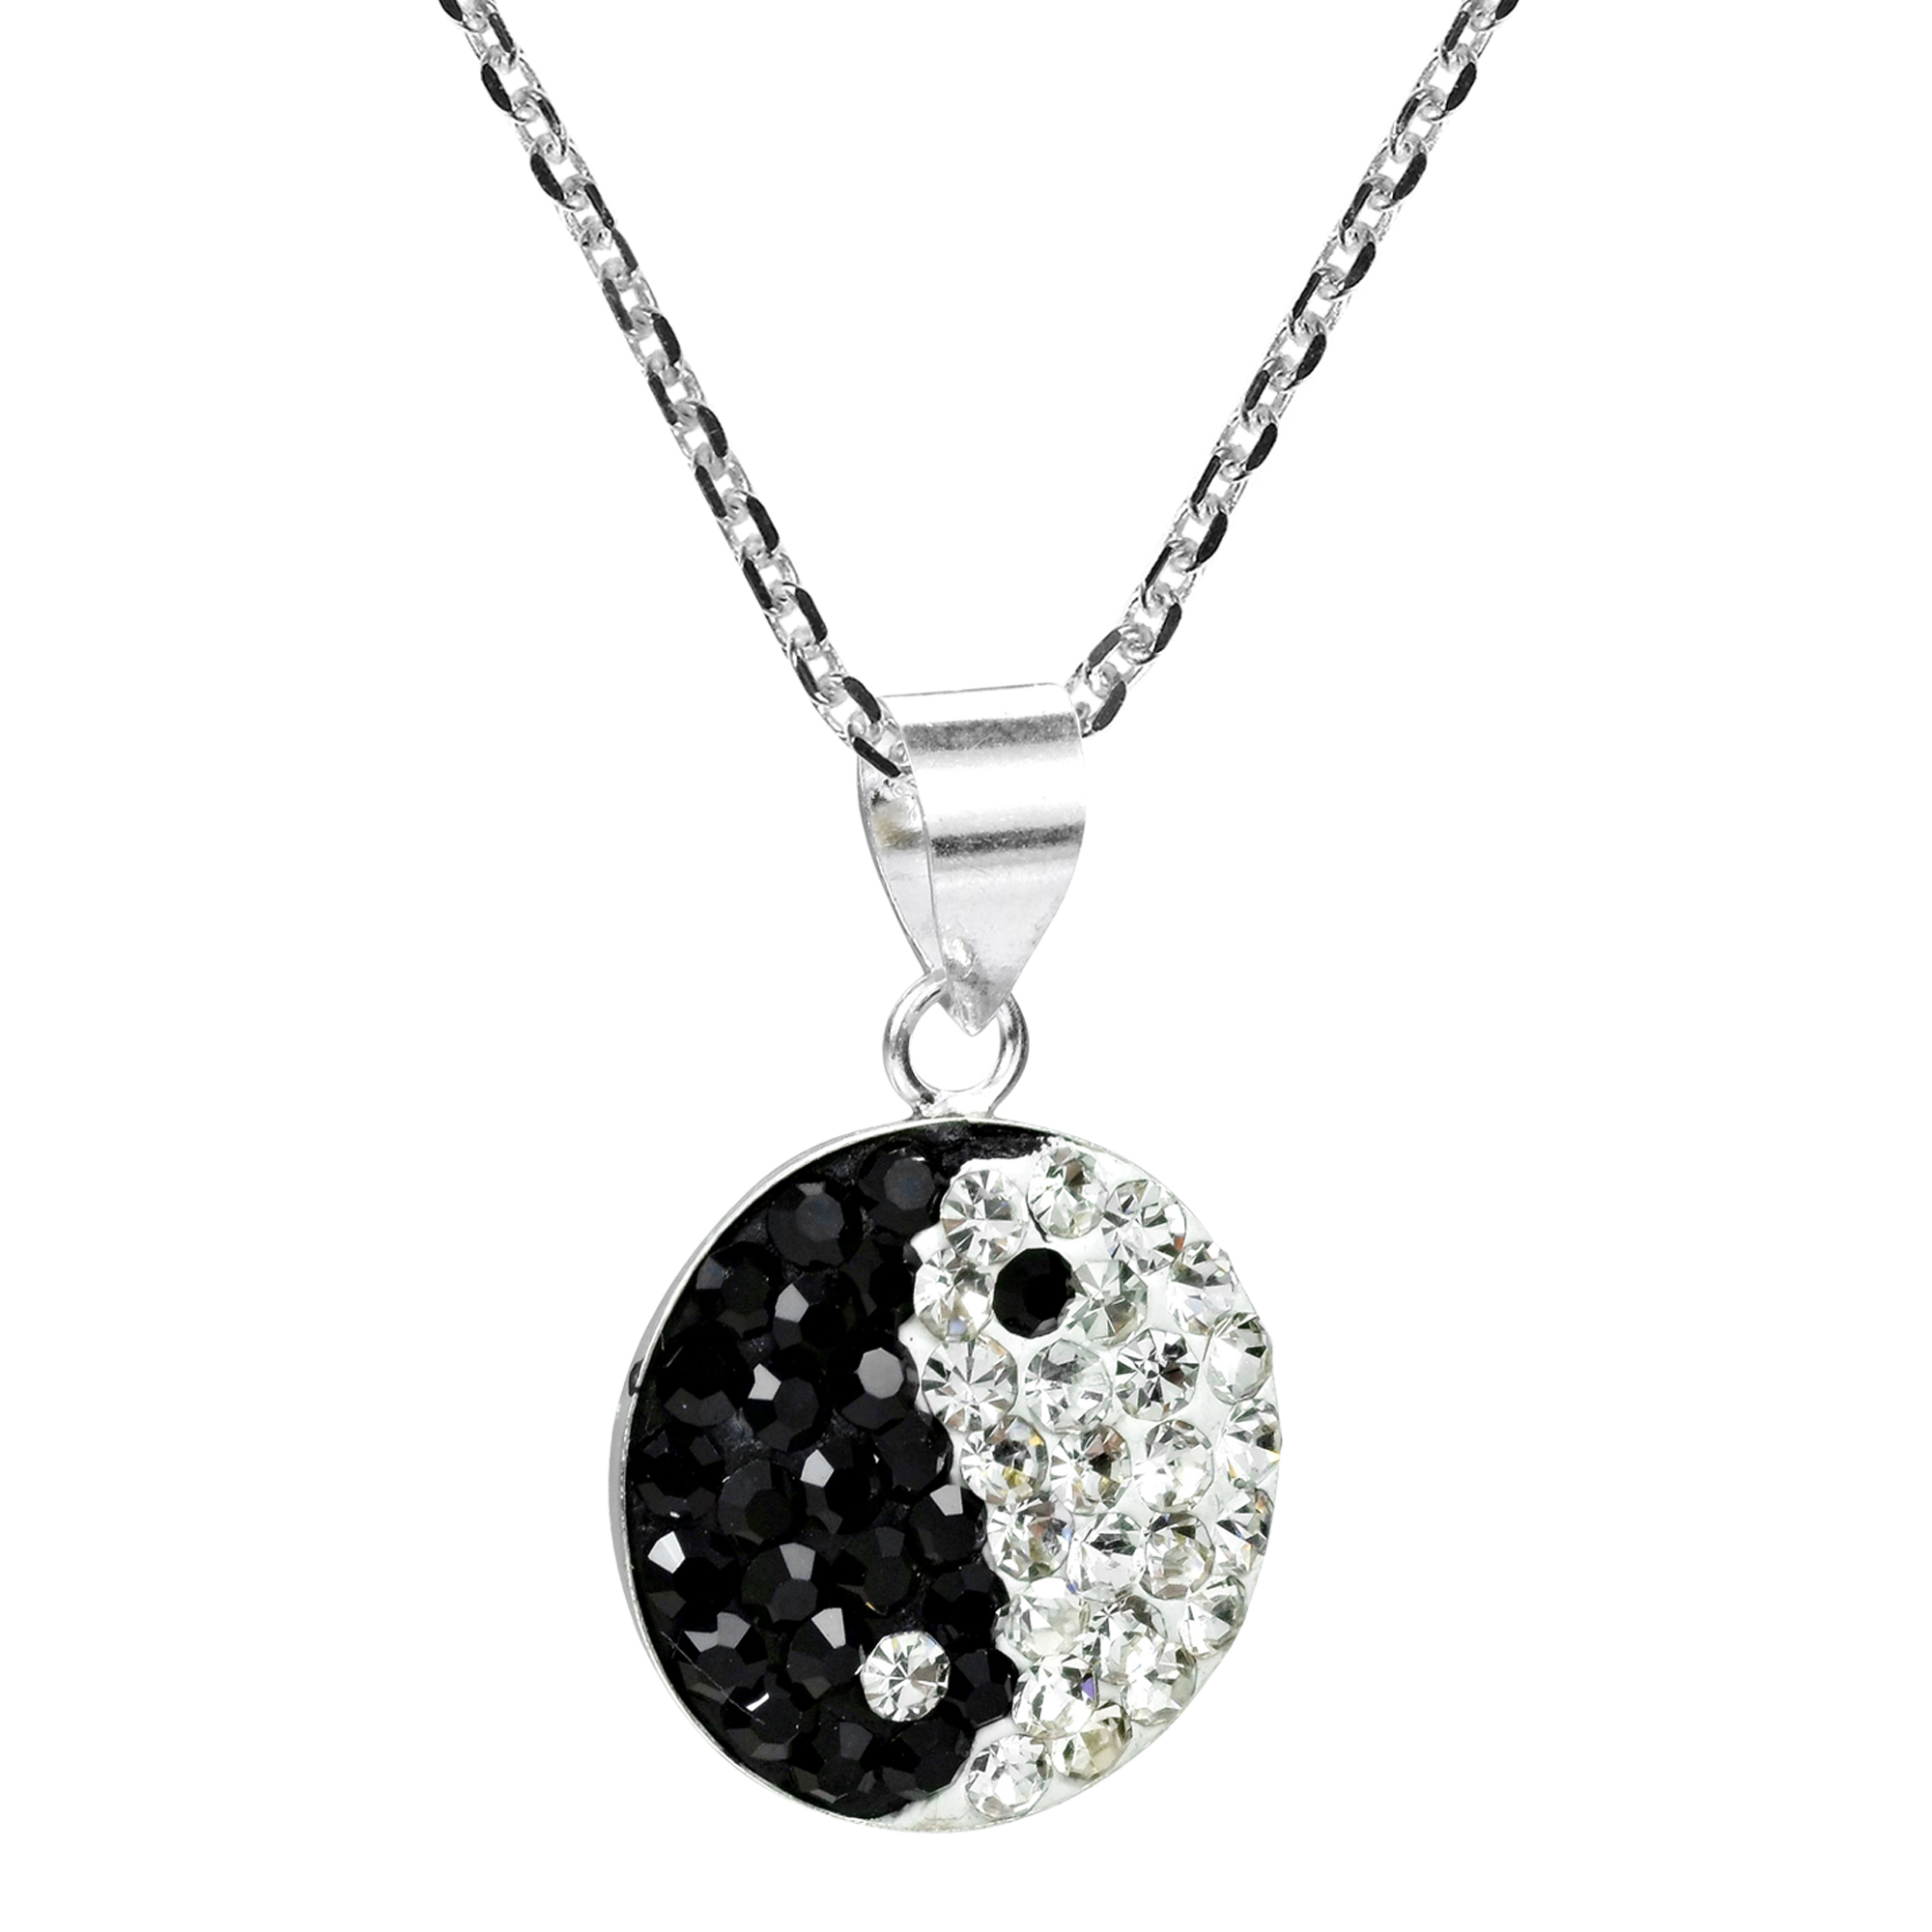 vaults yin moonstone crystal s with yang onyx pendant black necklace